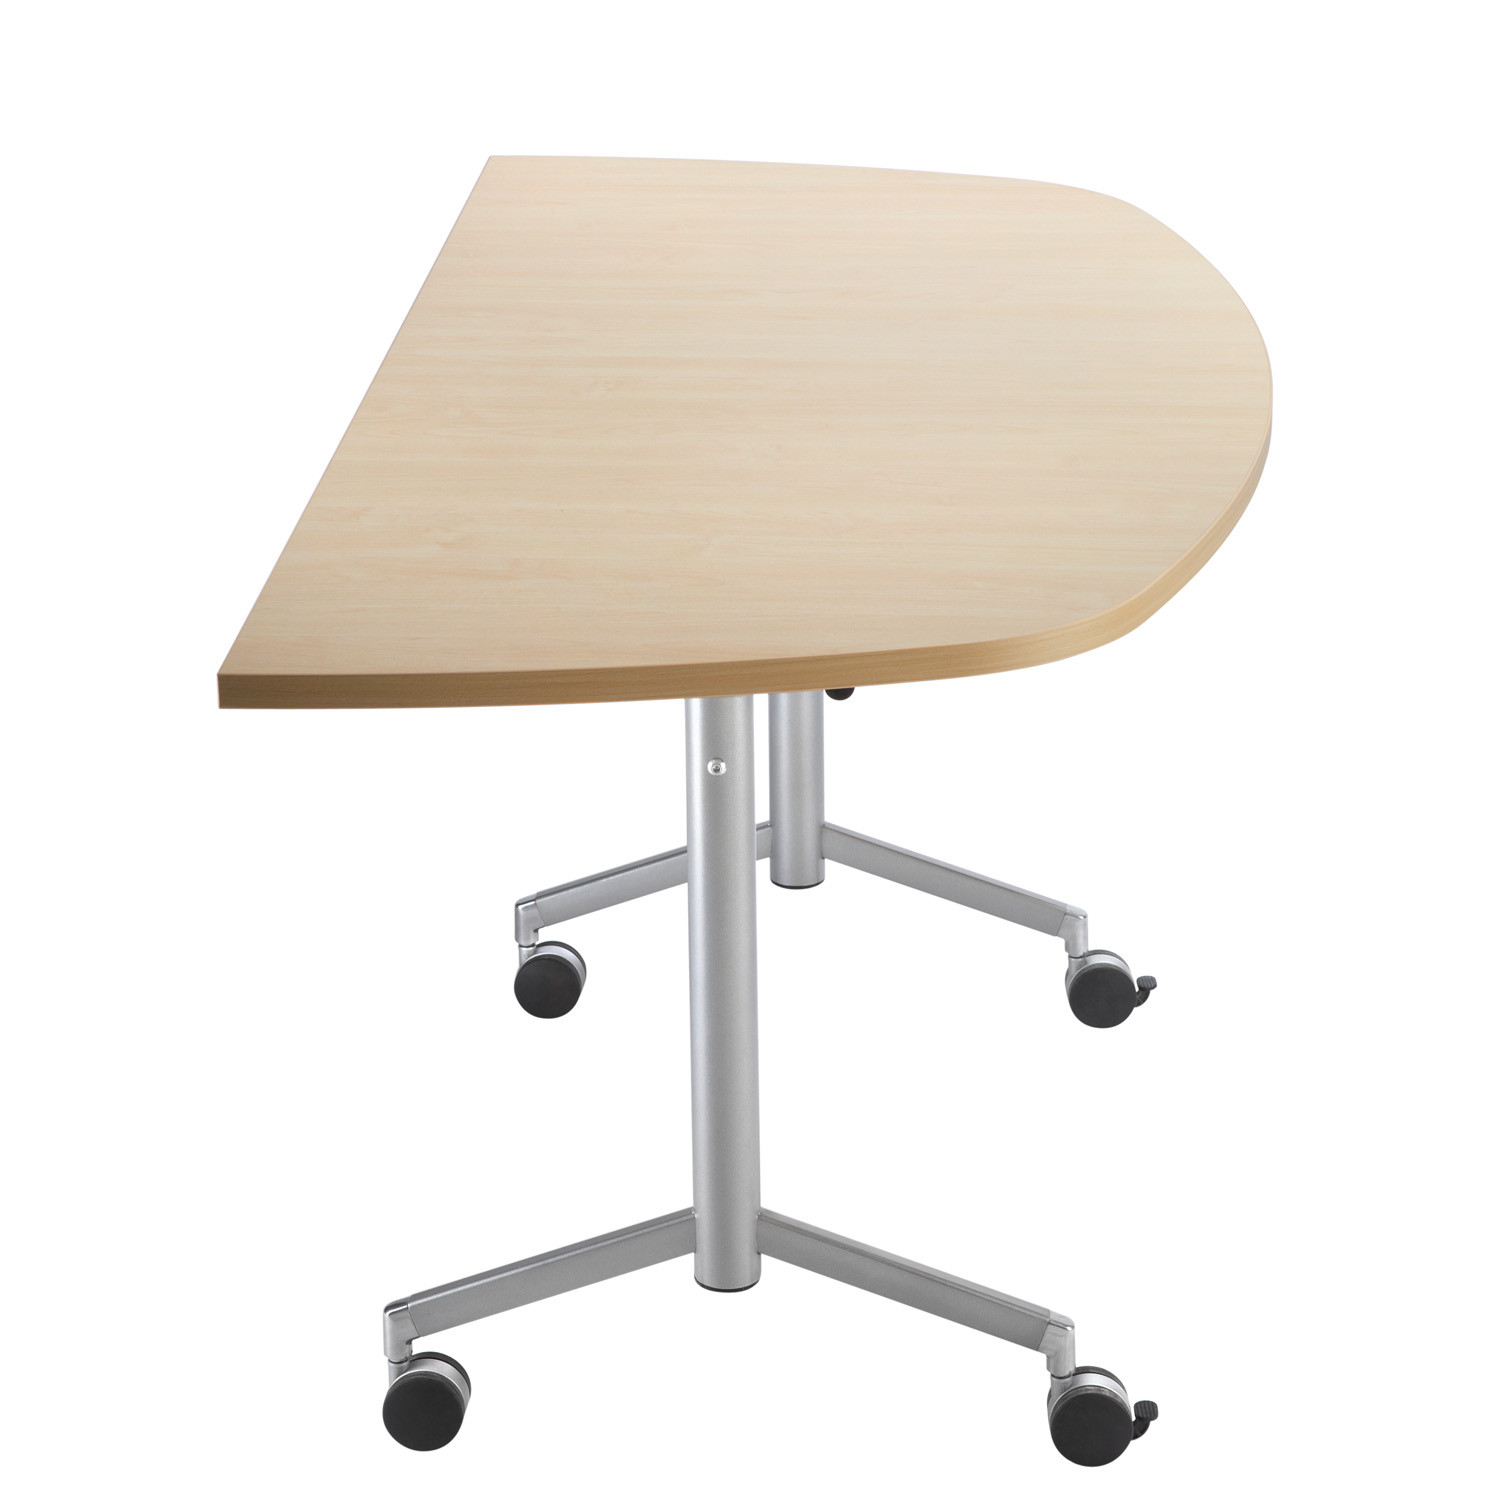 IS D-Shaped Meeting Table